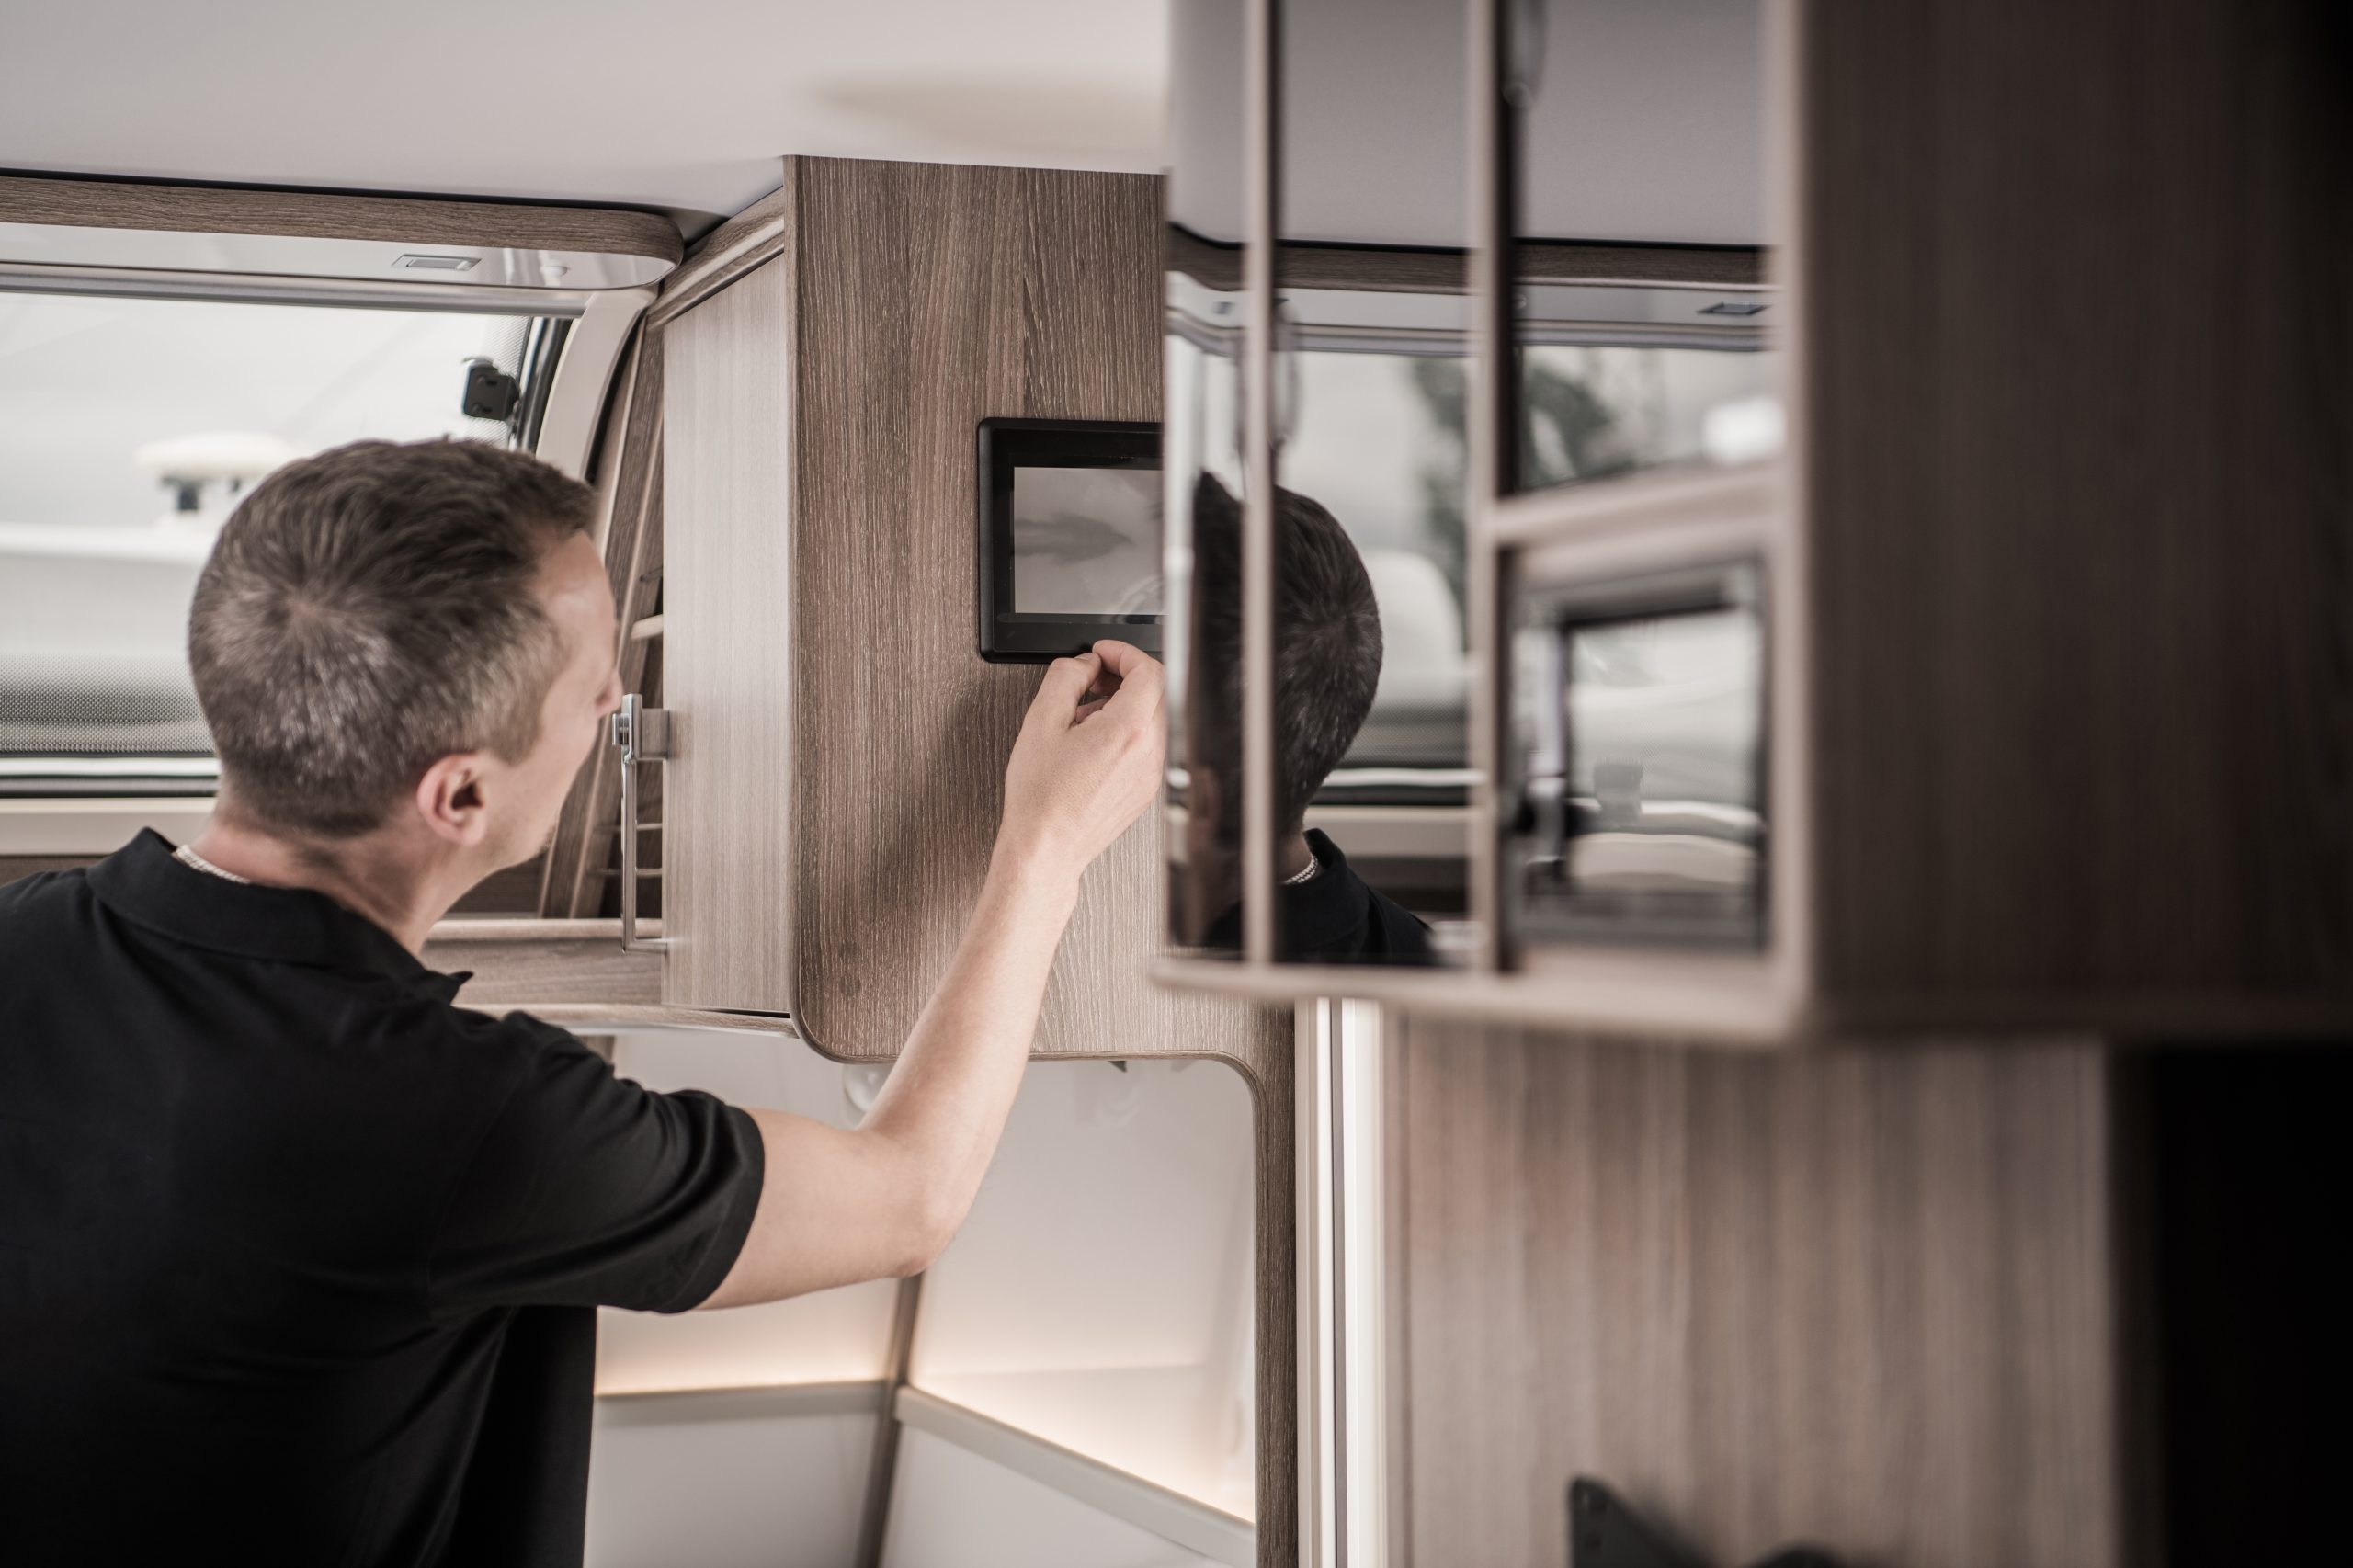 Get Your RV Ready for Summer - Interior